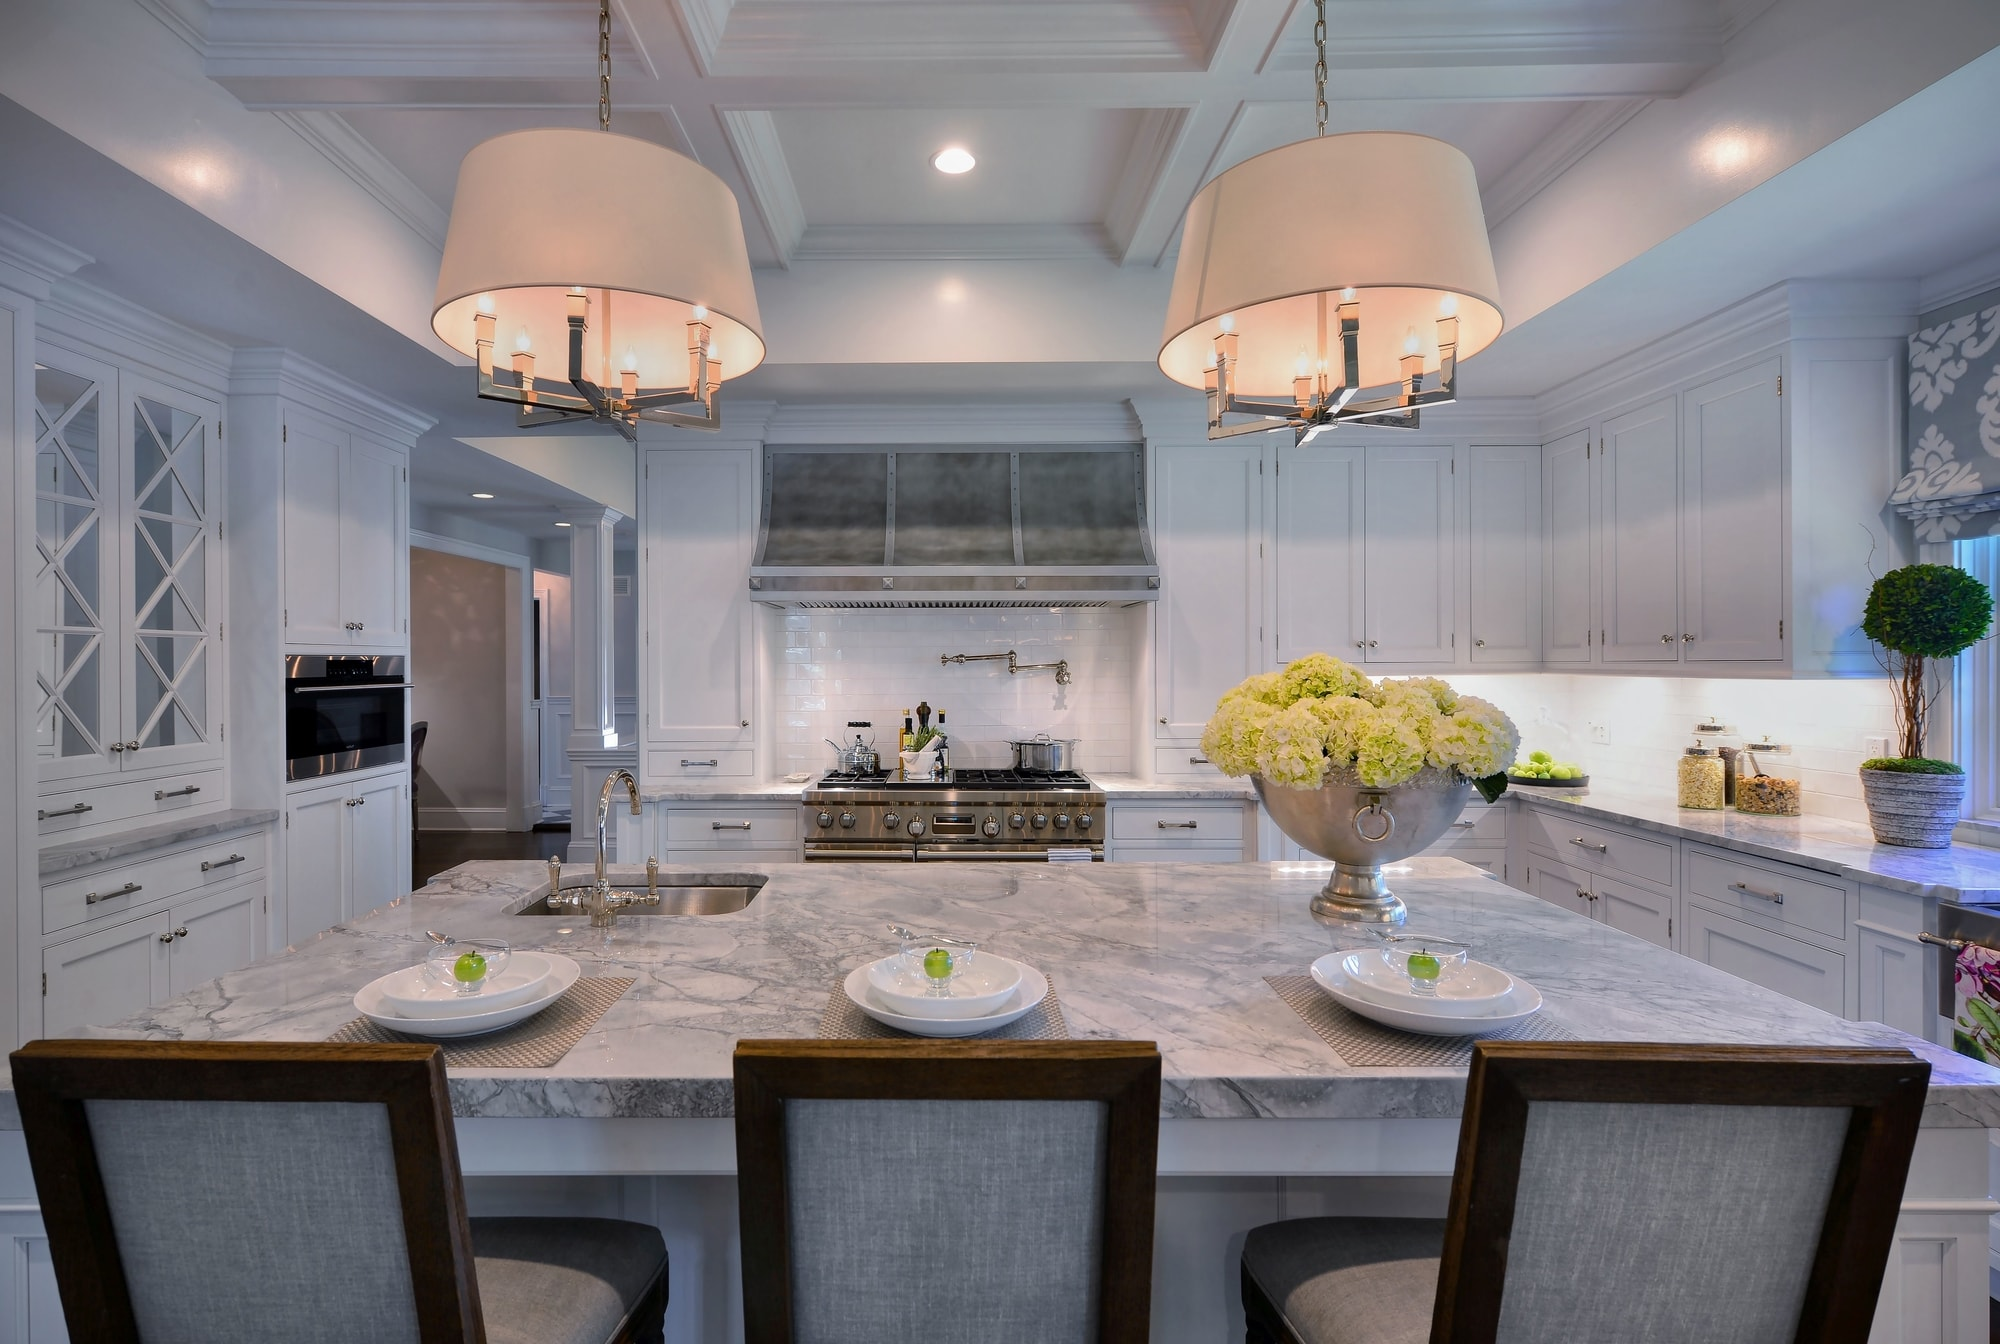 Transitional style kitchen with sink and faucet at the center island